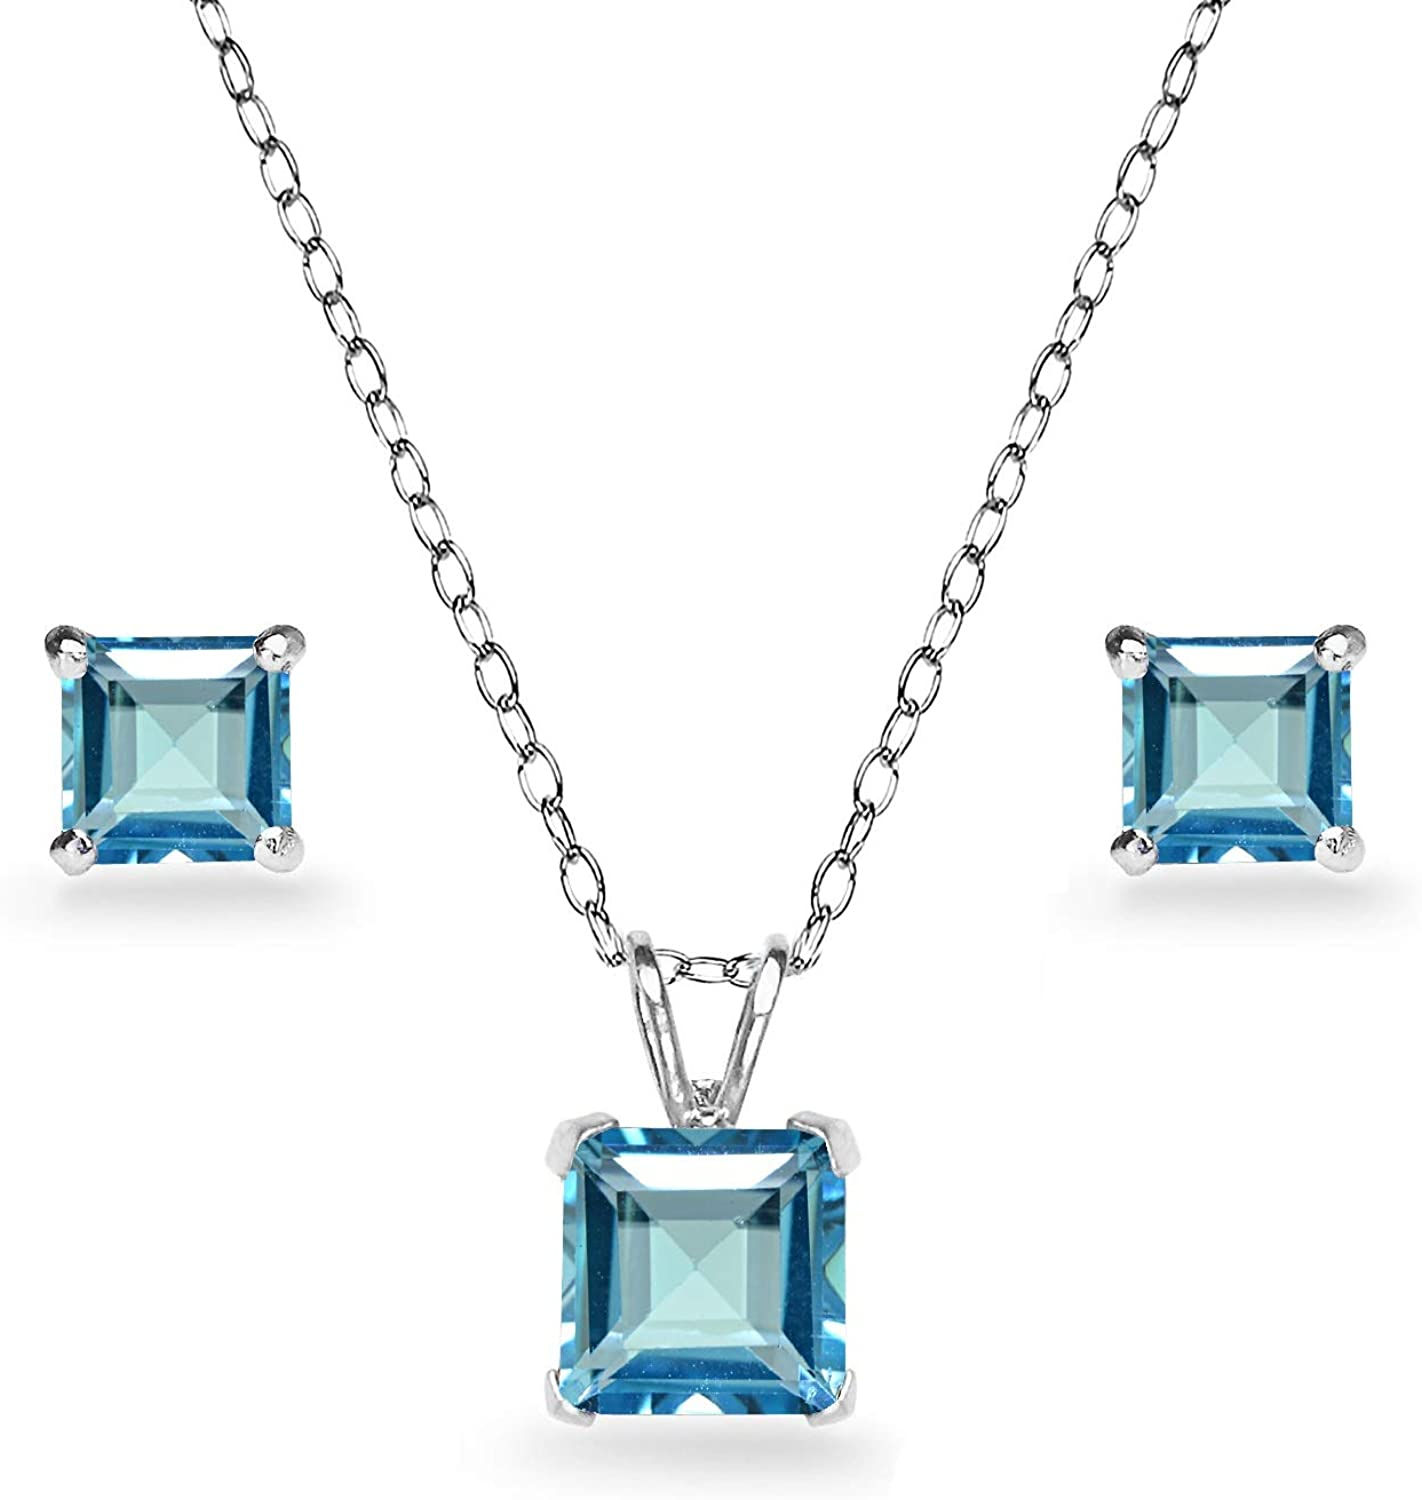 Gemstone Jewelry Set Gift For Women Natural London Blue Topaz Jewelry Set Blue Topaz Set Bridal Jewelry Set Earring Ring Earring Set